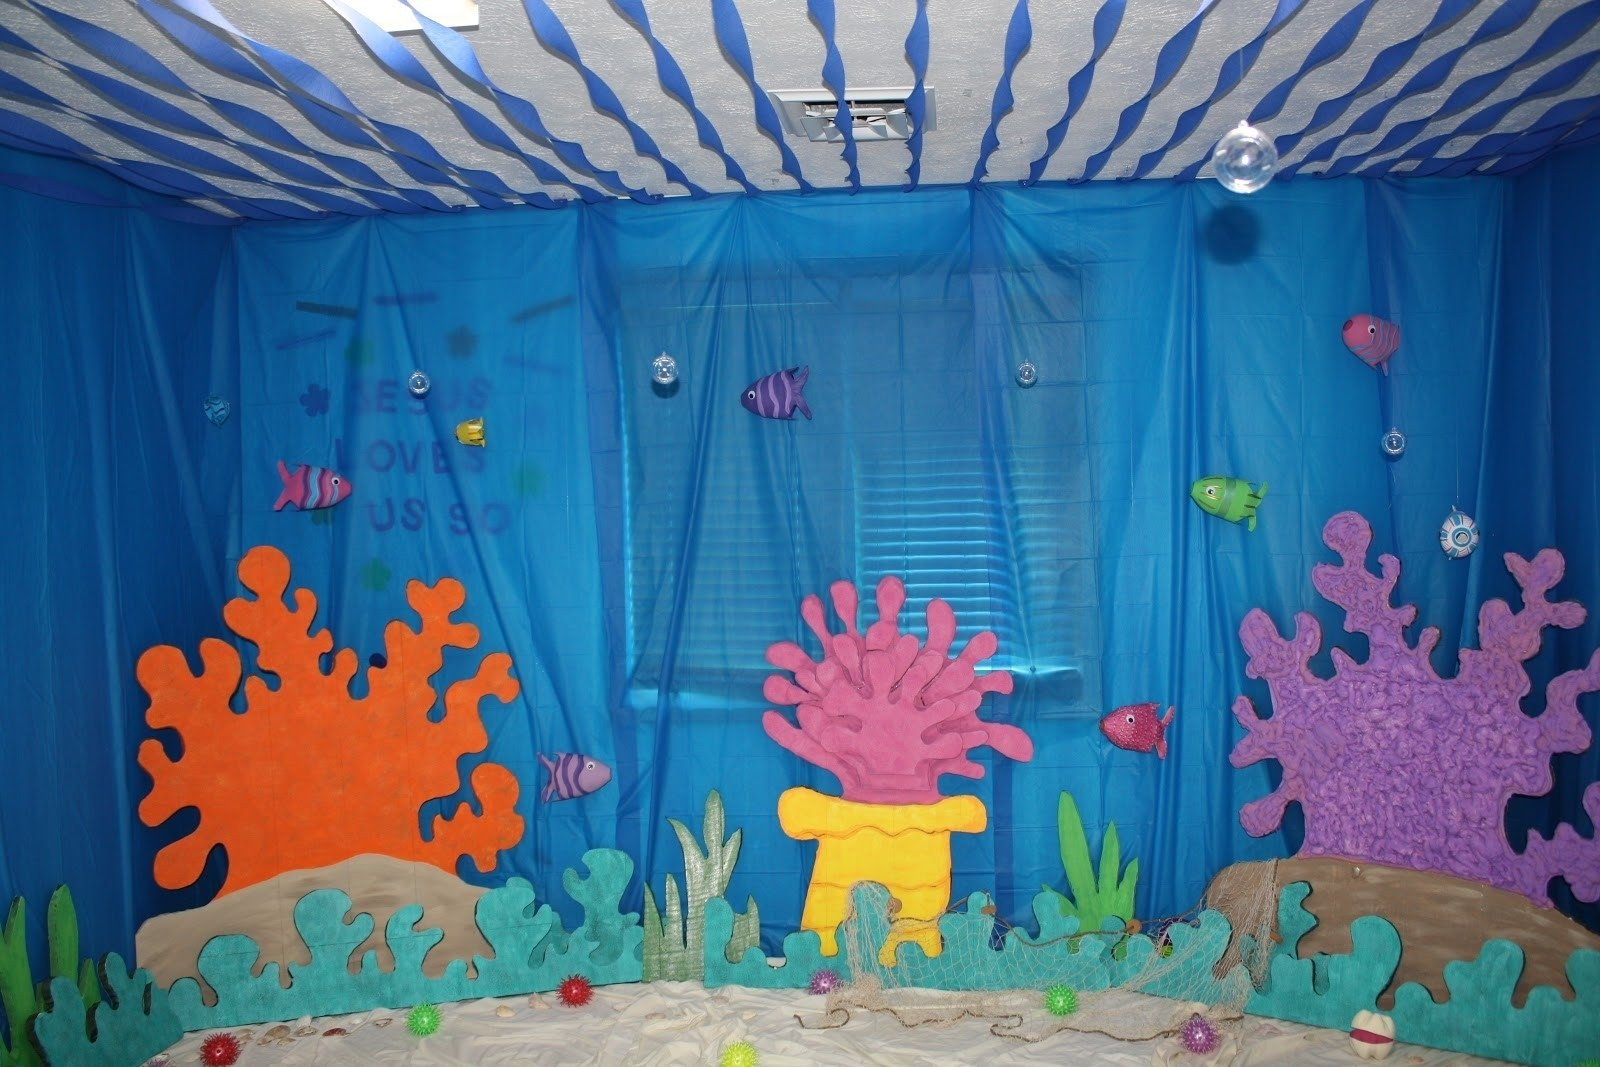 10 Fabulous Under The Sea Centerpiece Ideas under the sea wall decor unique eager little mind under the sea 2020